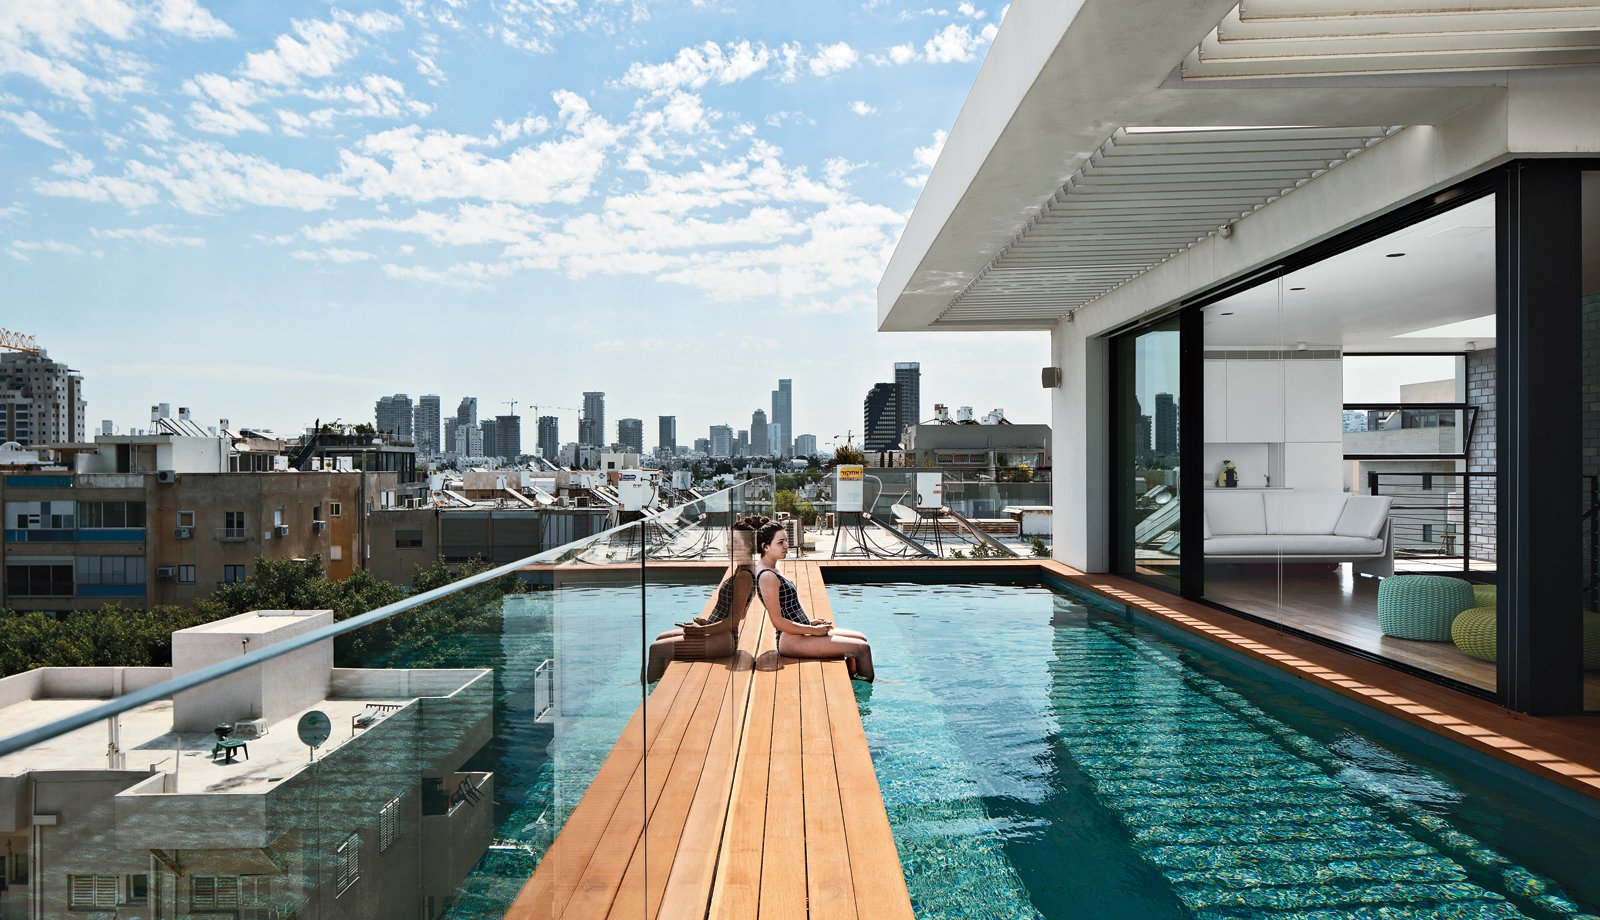 Articles about modern high rise town house tel aviv on Dwell.com